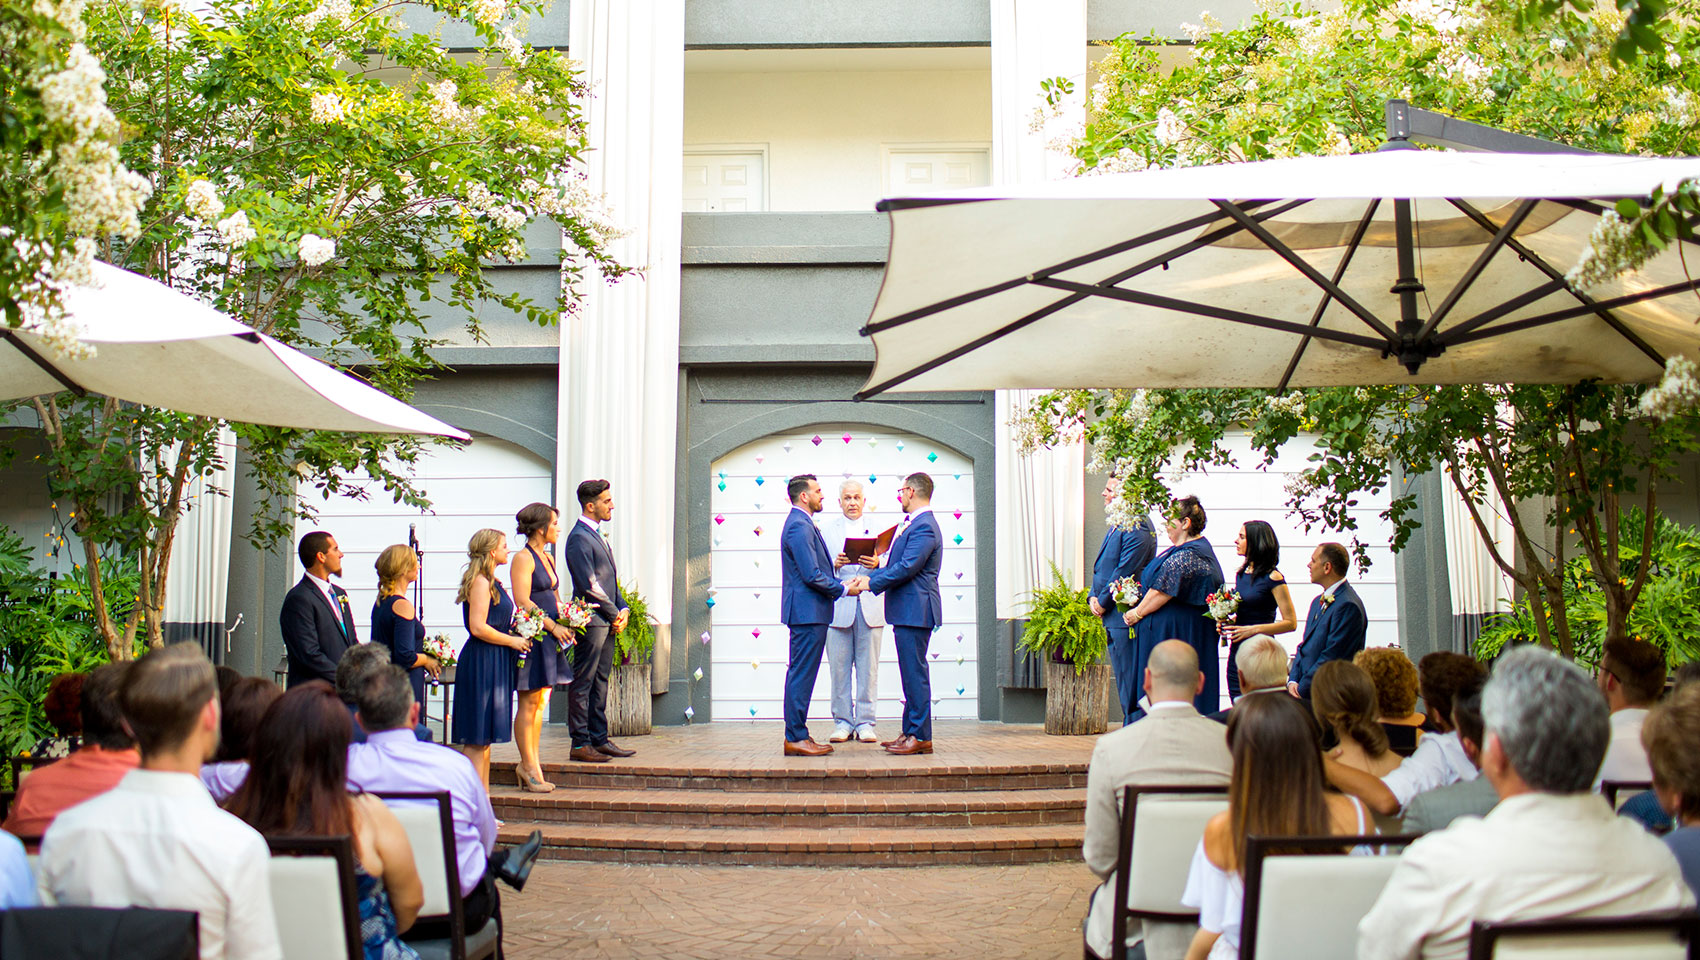 The Kimpton Brice Hotel real weddings